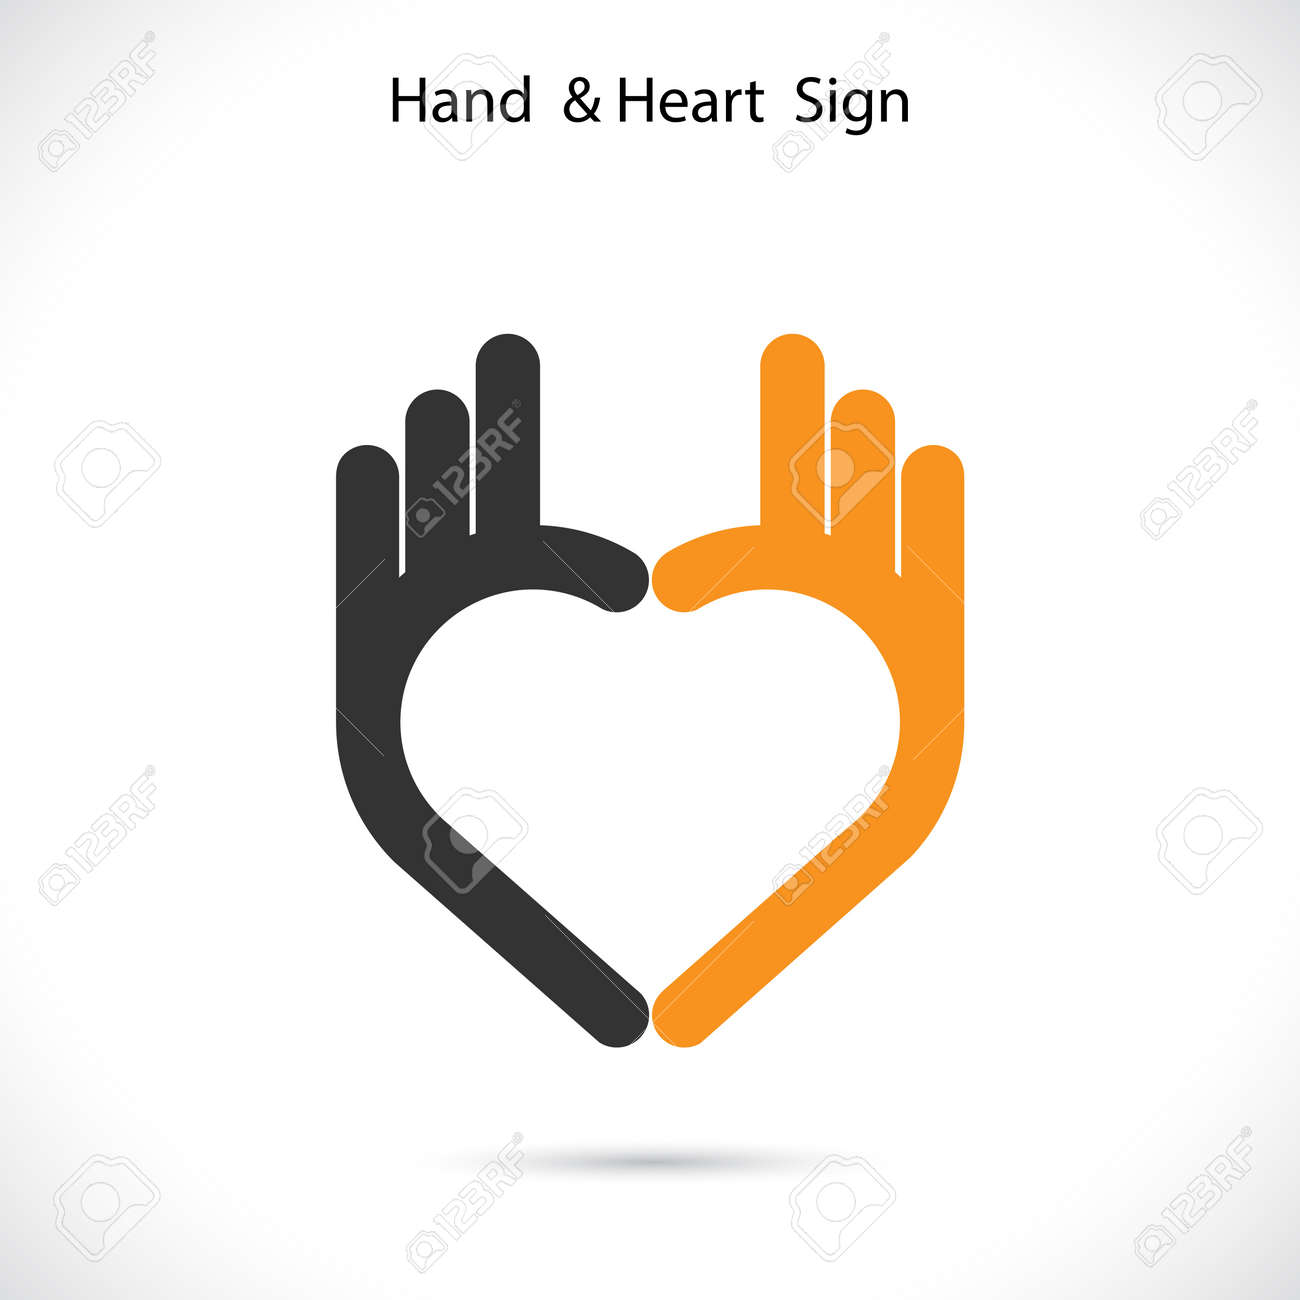 creative hand and heart shape abstract logo design hand ok symbol